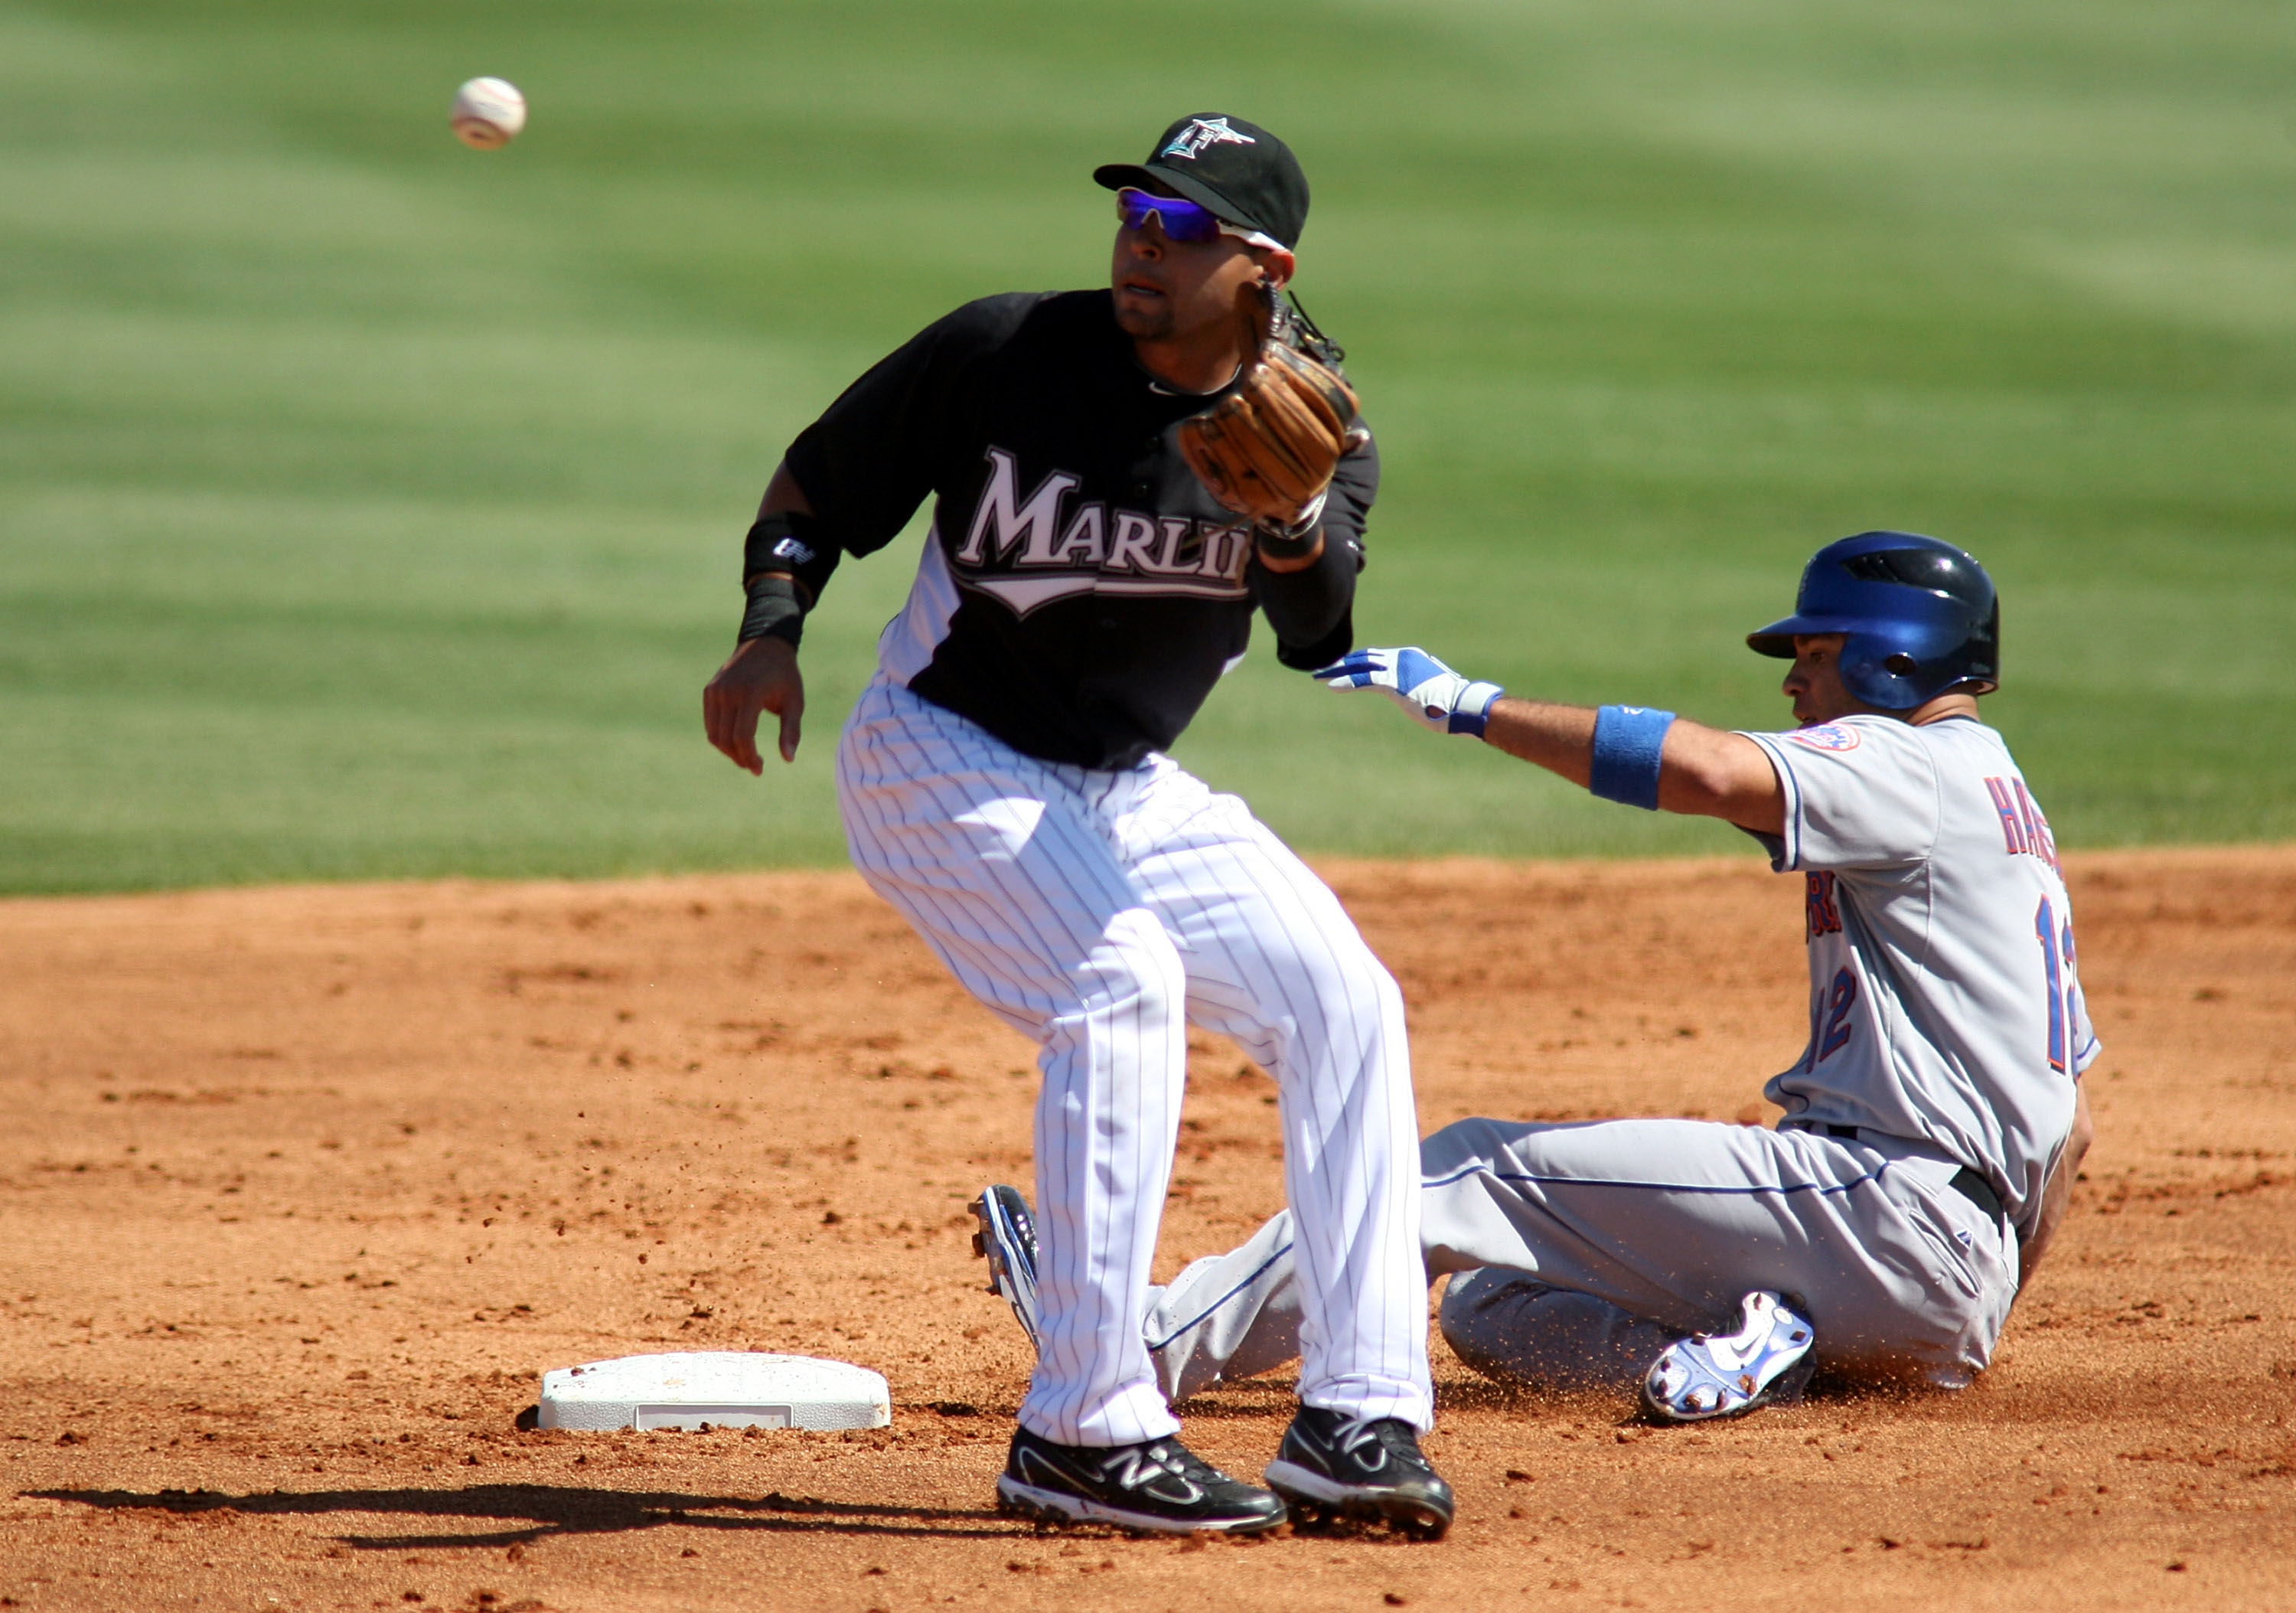 JUPITER, FL - MARCH 04:   Scott Hairston #12 of the New York Mets slides safely against second baseman Omar Infante #13 of the Florida Marlins at Roger Dean Stadium on March 4, 2011 in Jupiter, Florida.  (Photo by Marc Serota/Getty Images)